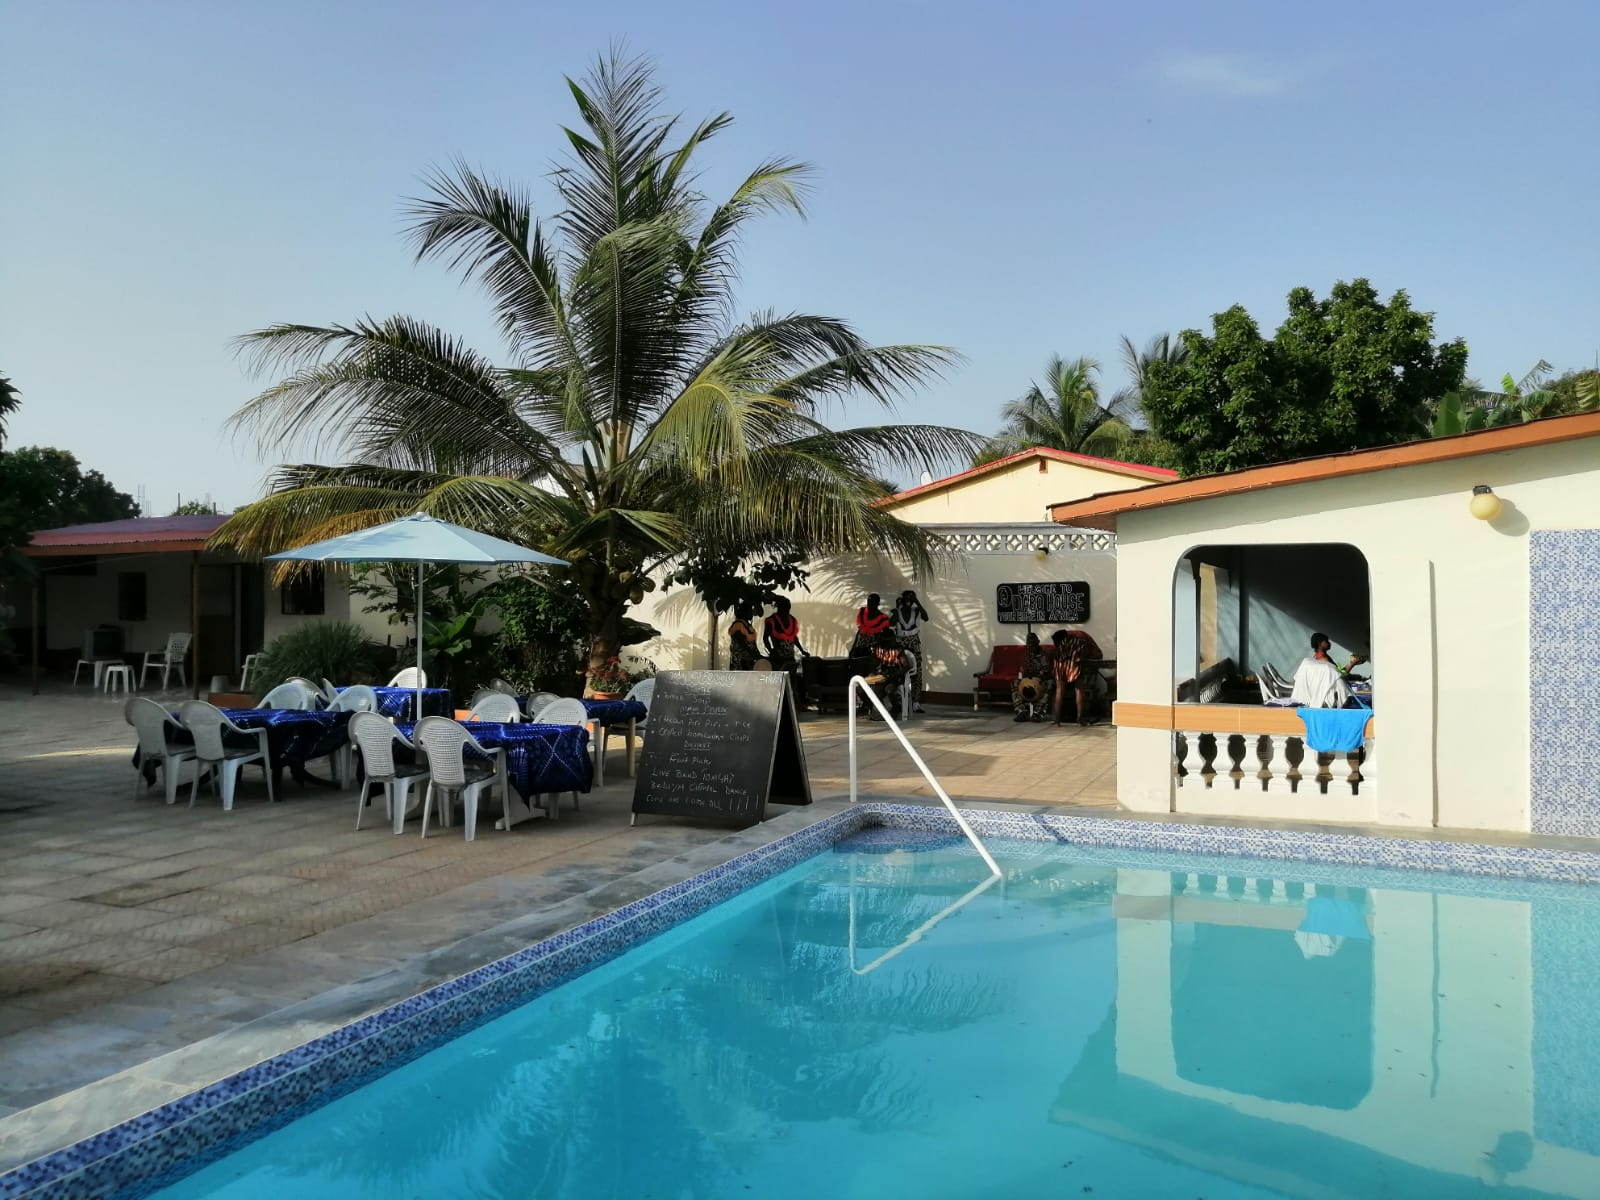 dabohousepool - THE GAMBIA 2021/22: WHY IS AFRICA'S SMALLEST COUNTRY IDEAL AS AN ADVISABLE WINTER DESTINATION?